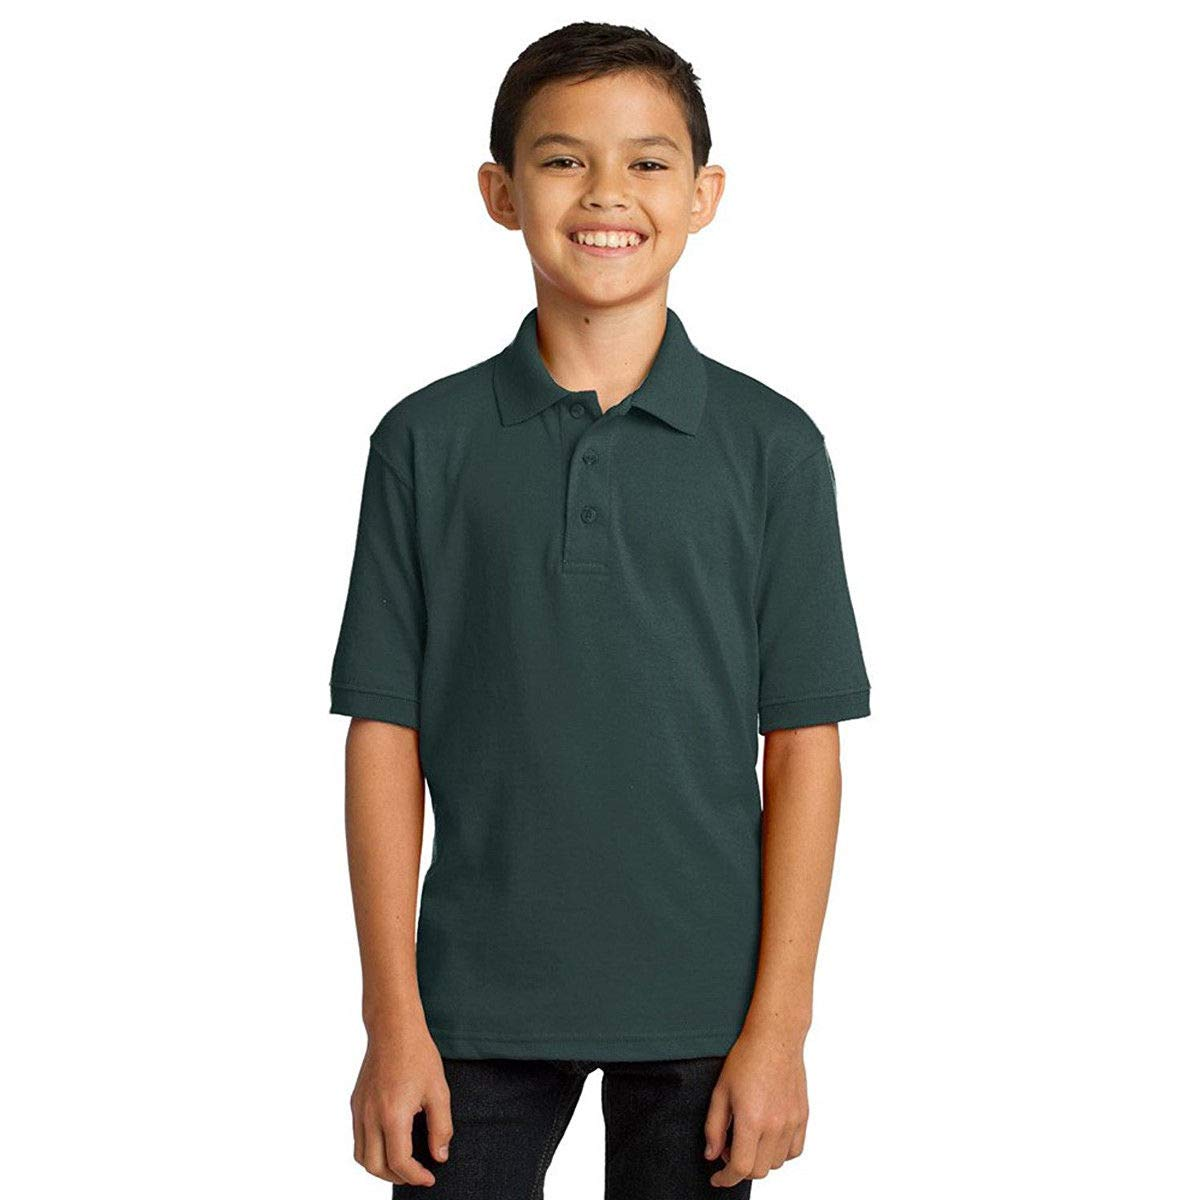 Comfortable Port /& Company Youth Polo T Shirts Short Sleeve Jersey Blend Uniform Kids Boys Color Dark Green Size L